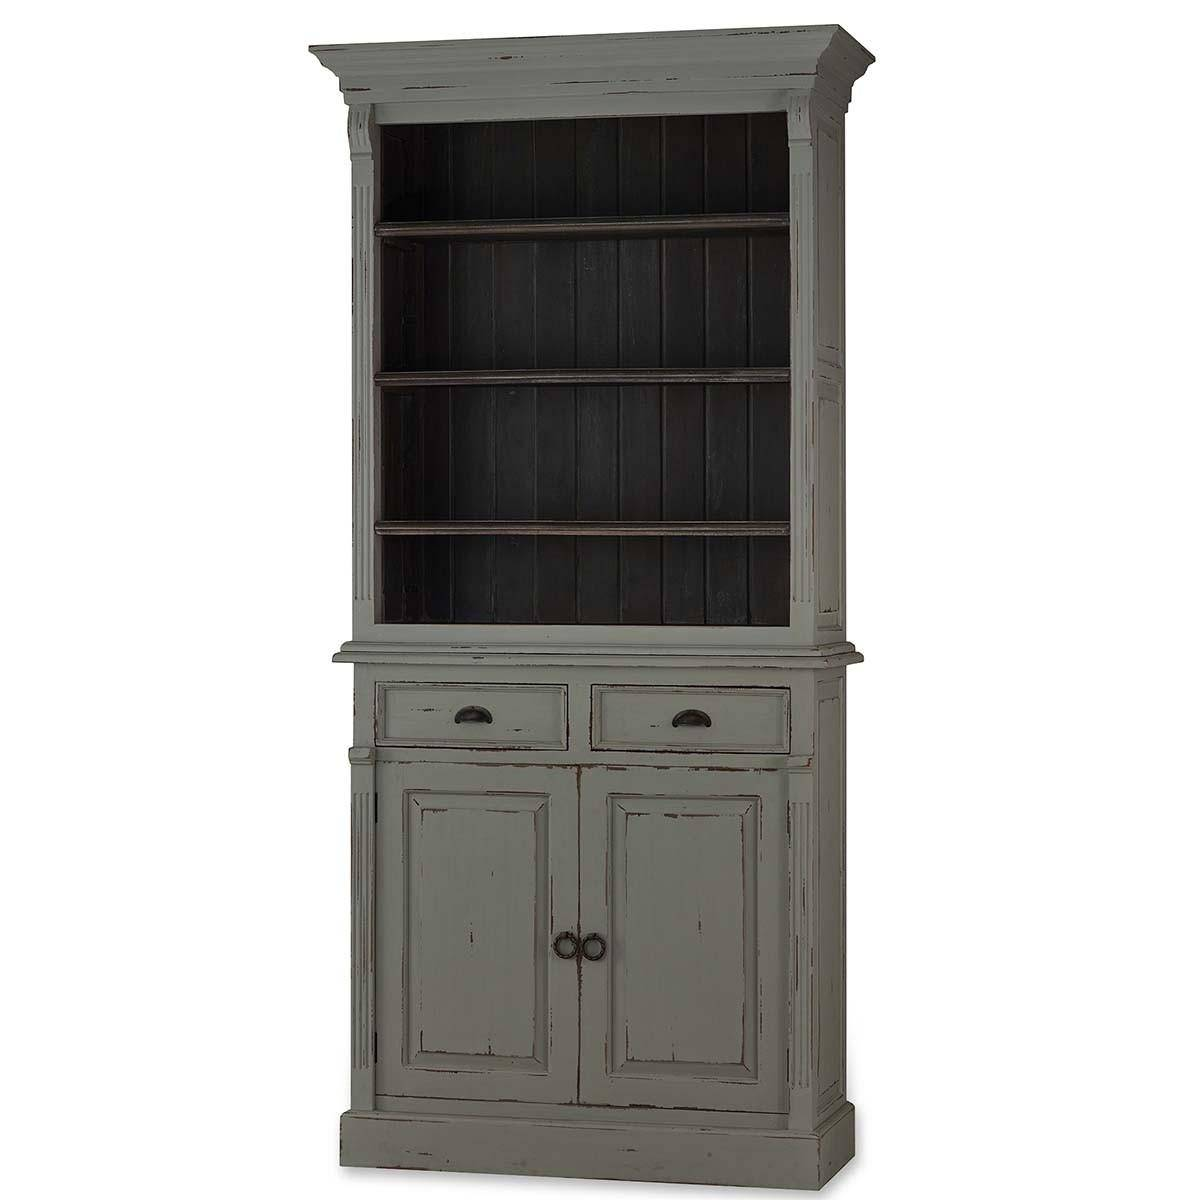 Bramble 25760 Rustic Grey Hudson Narrow Bookcase Solid Wood